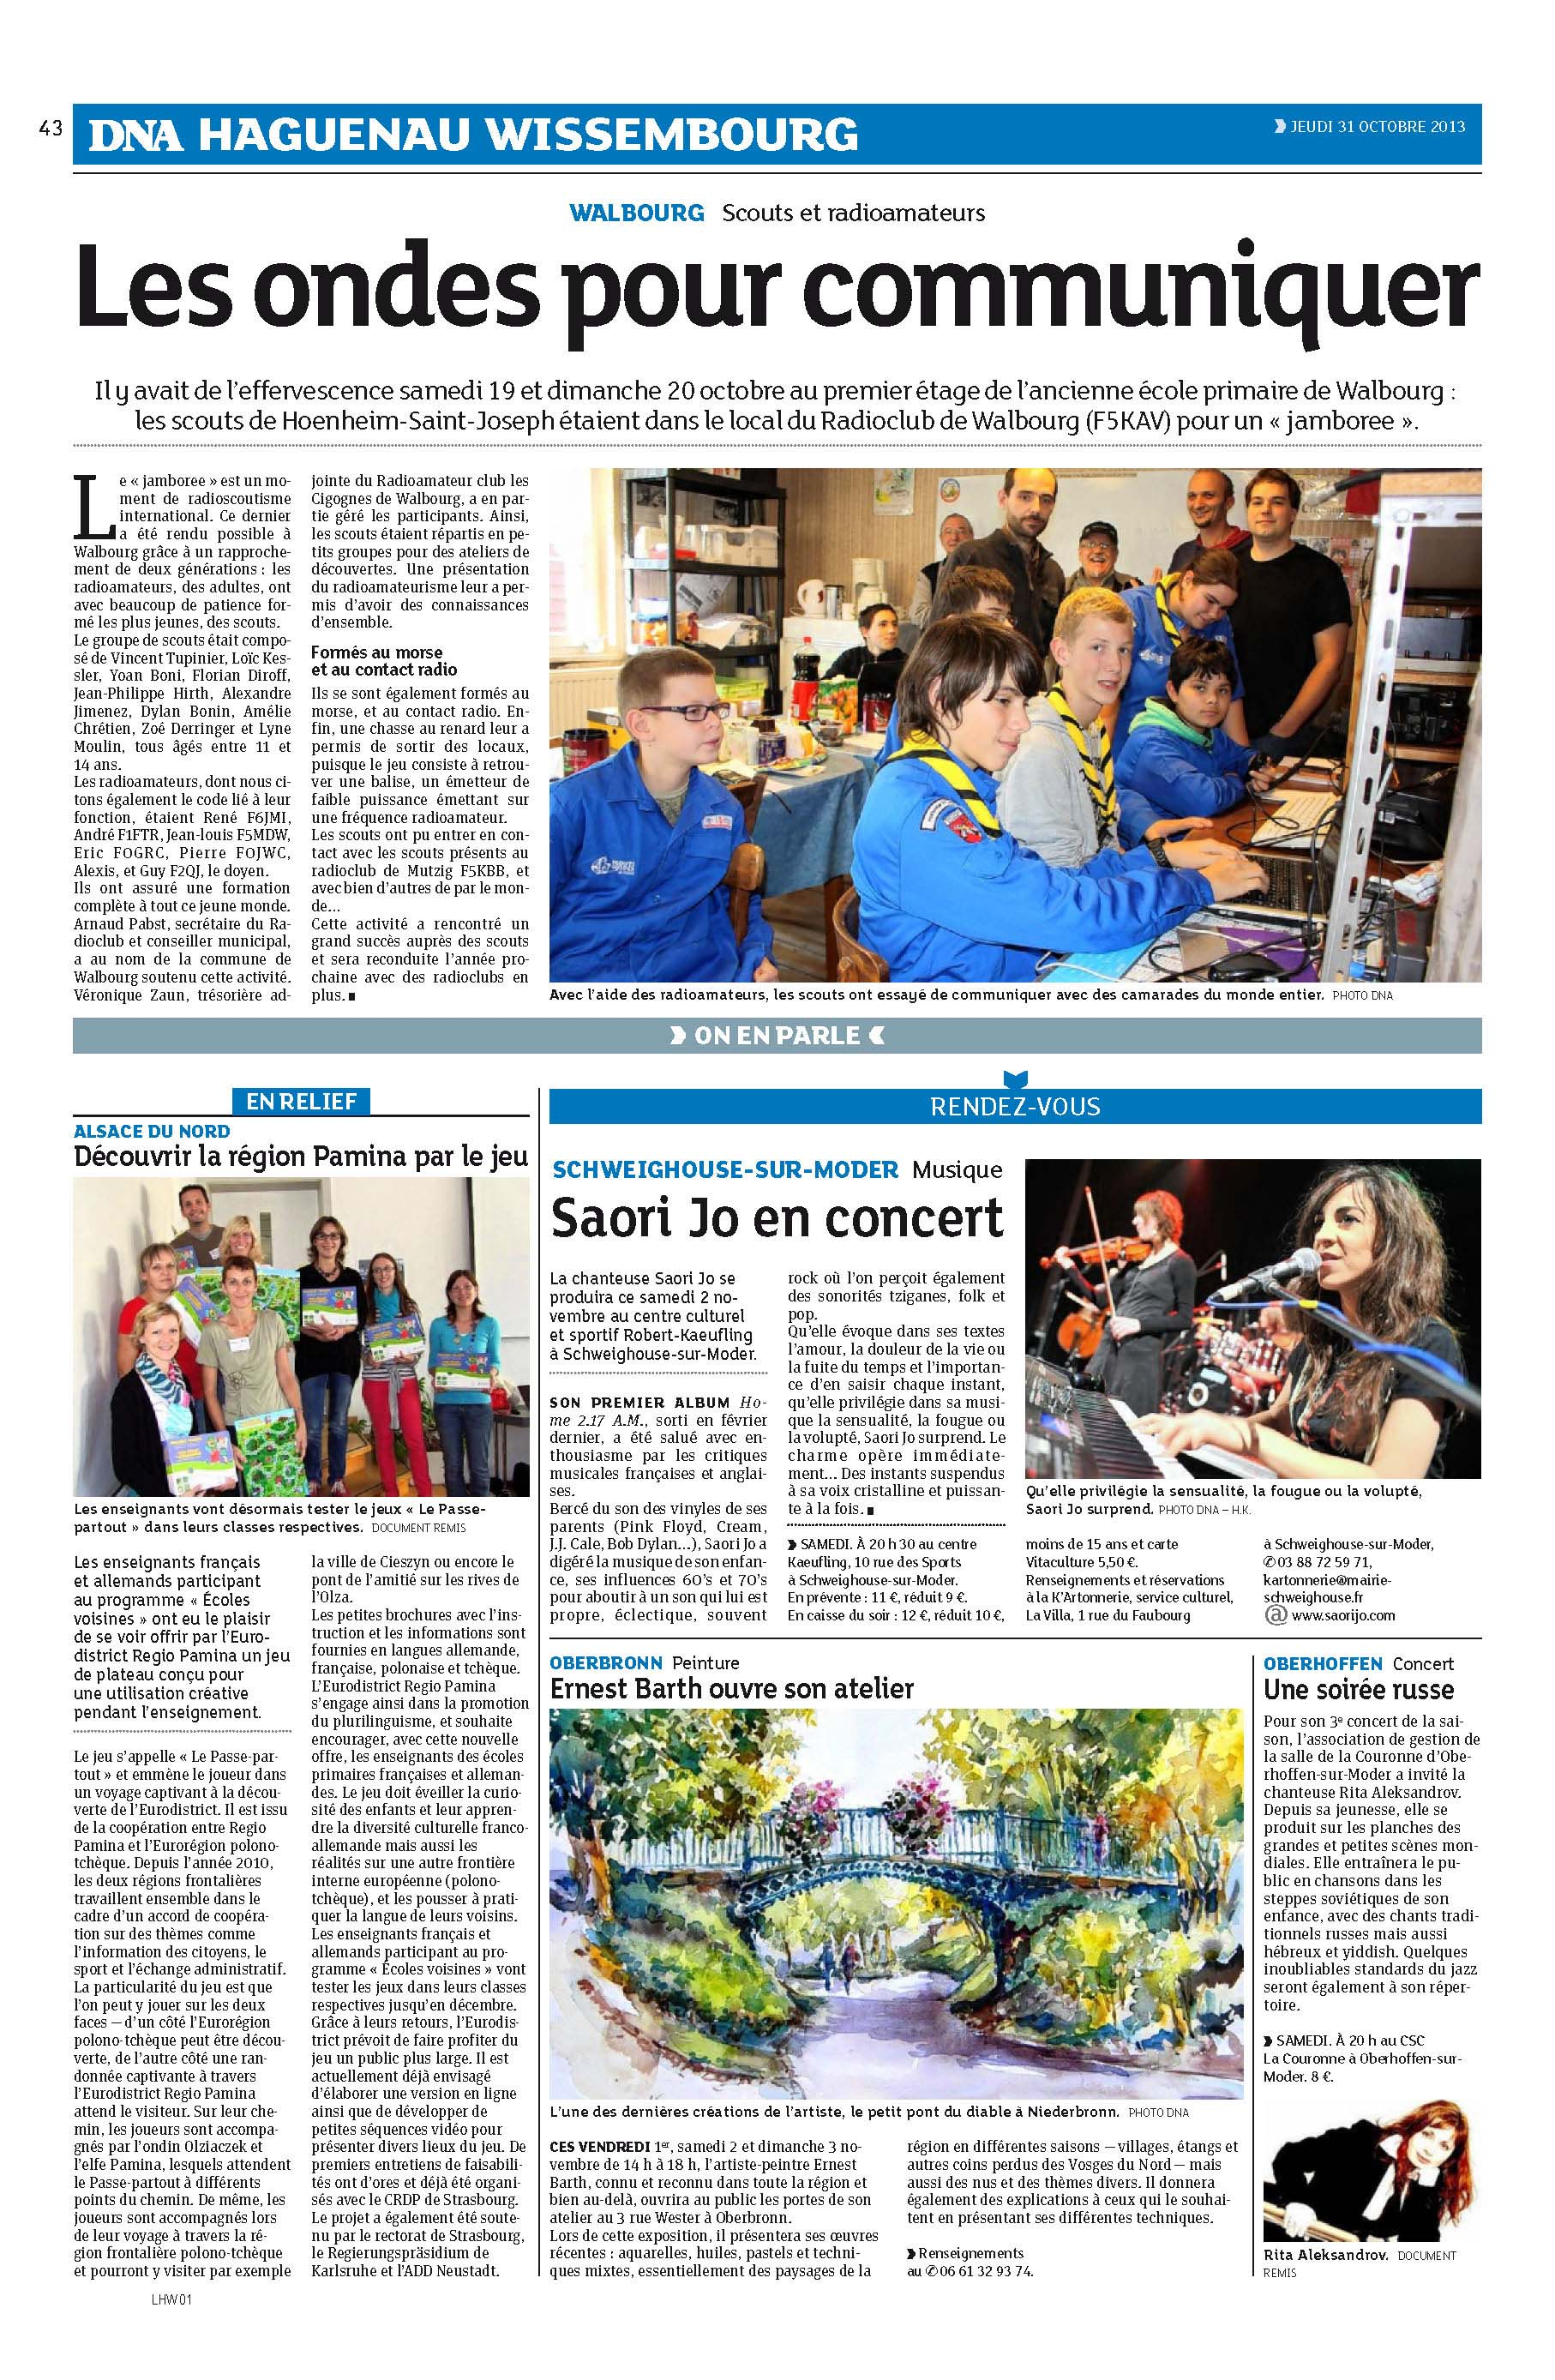 Article DNA Jamboree 2013 F5KAV du-31-10-2013